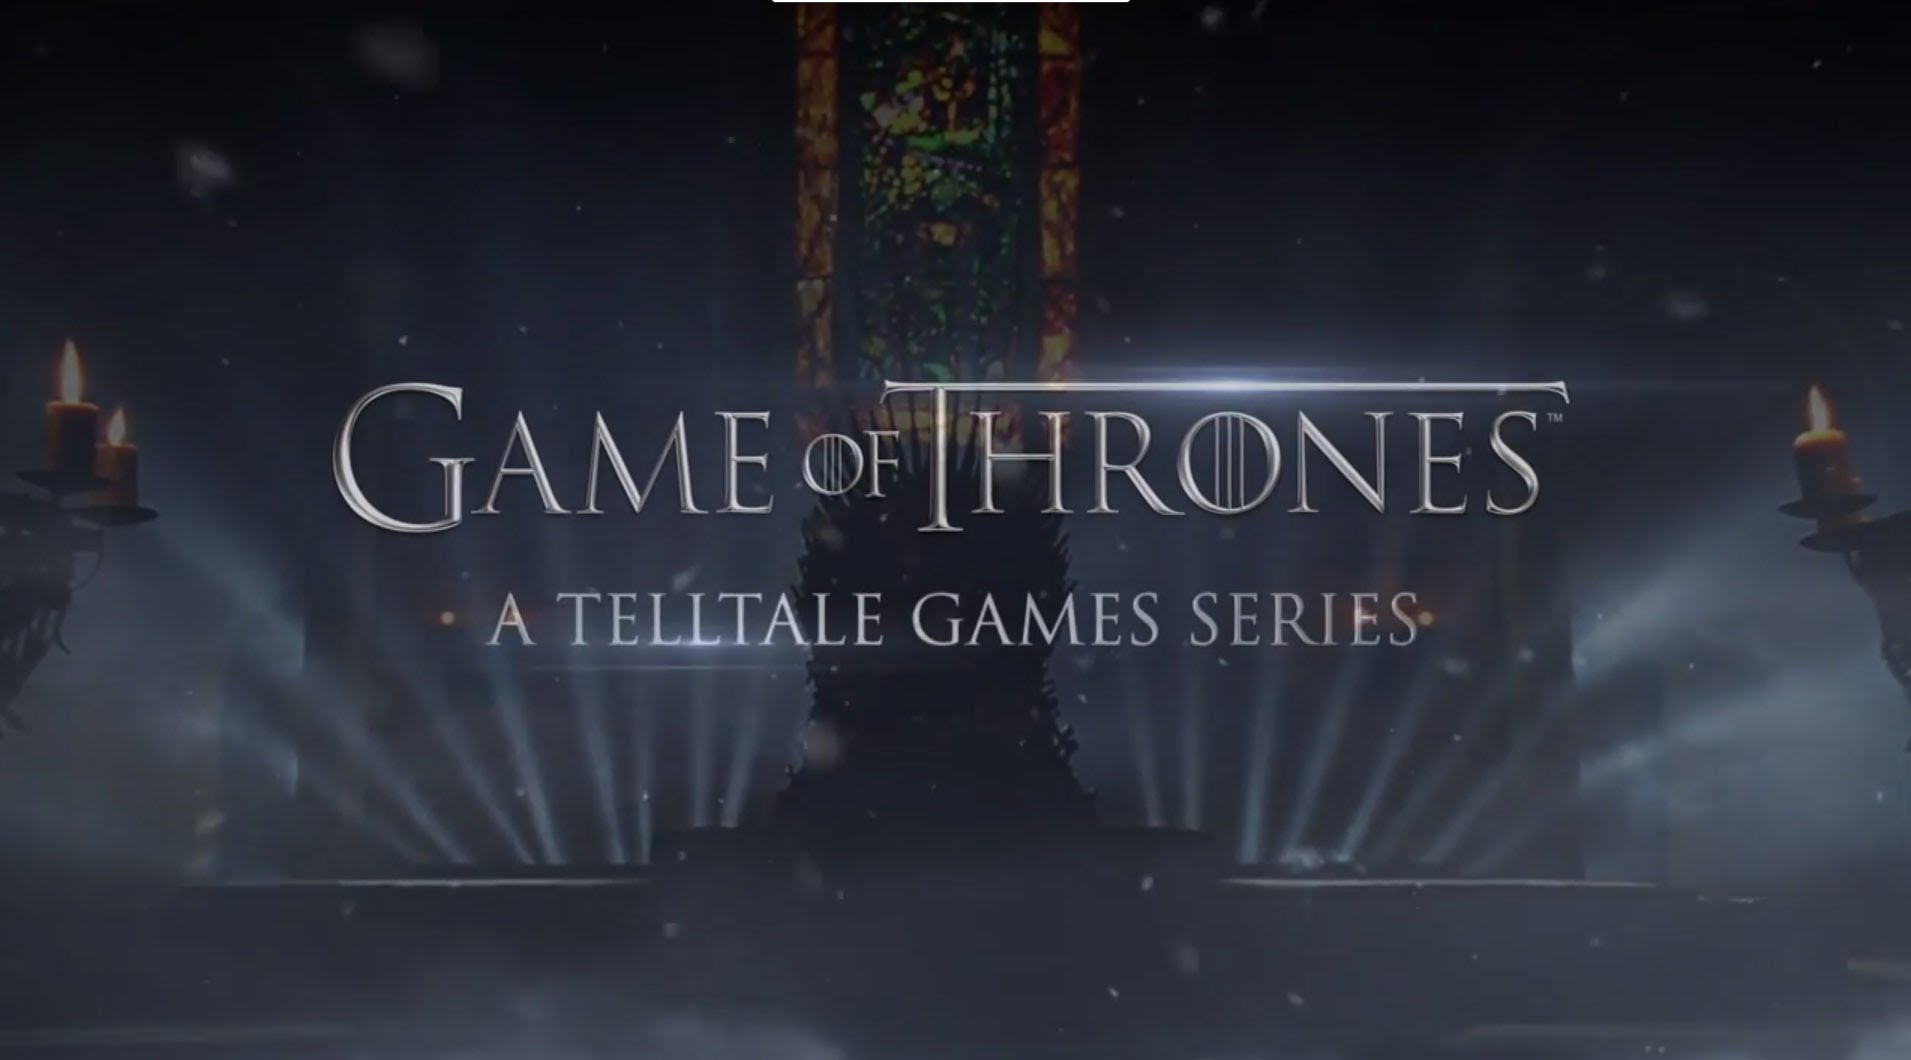 Telltale Games' Game of Thrones title will span six episodes!